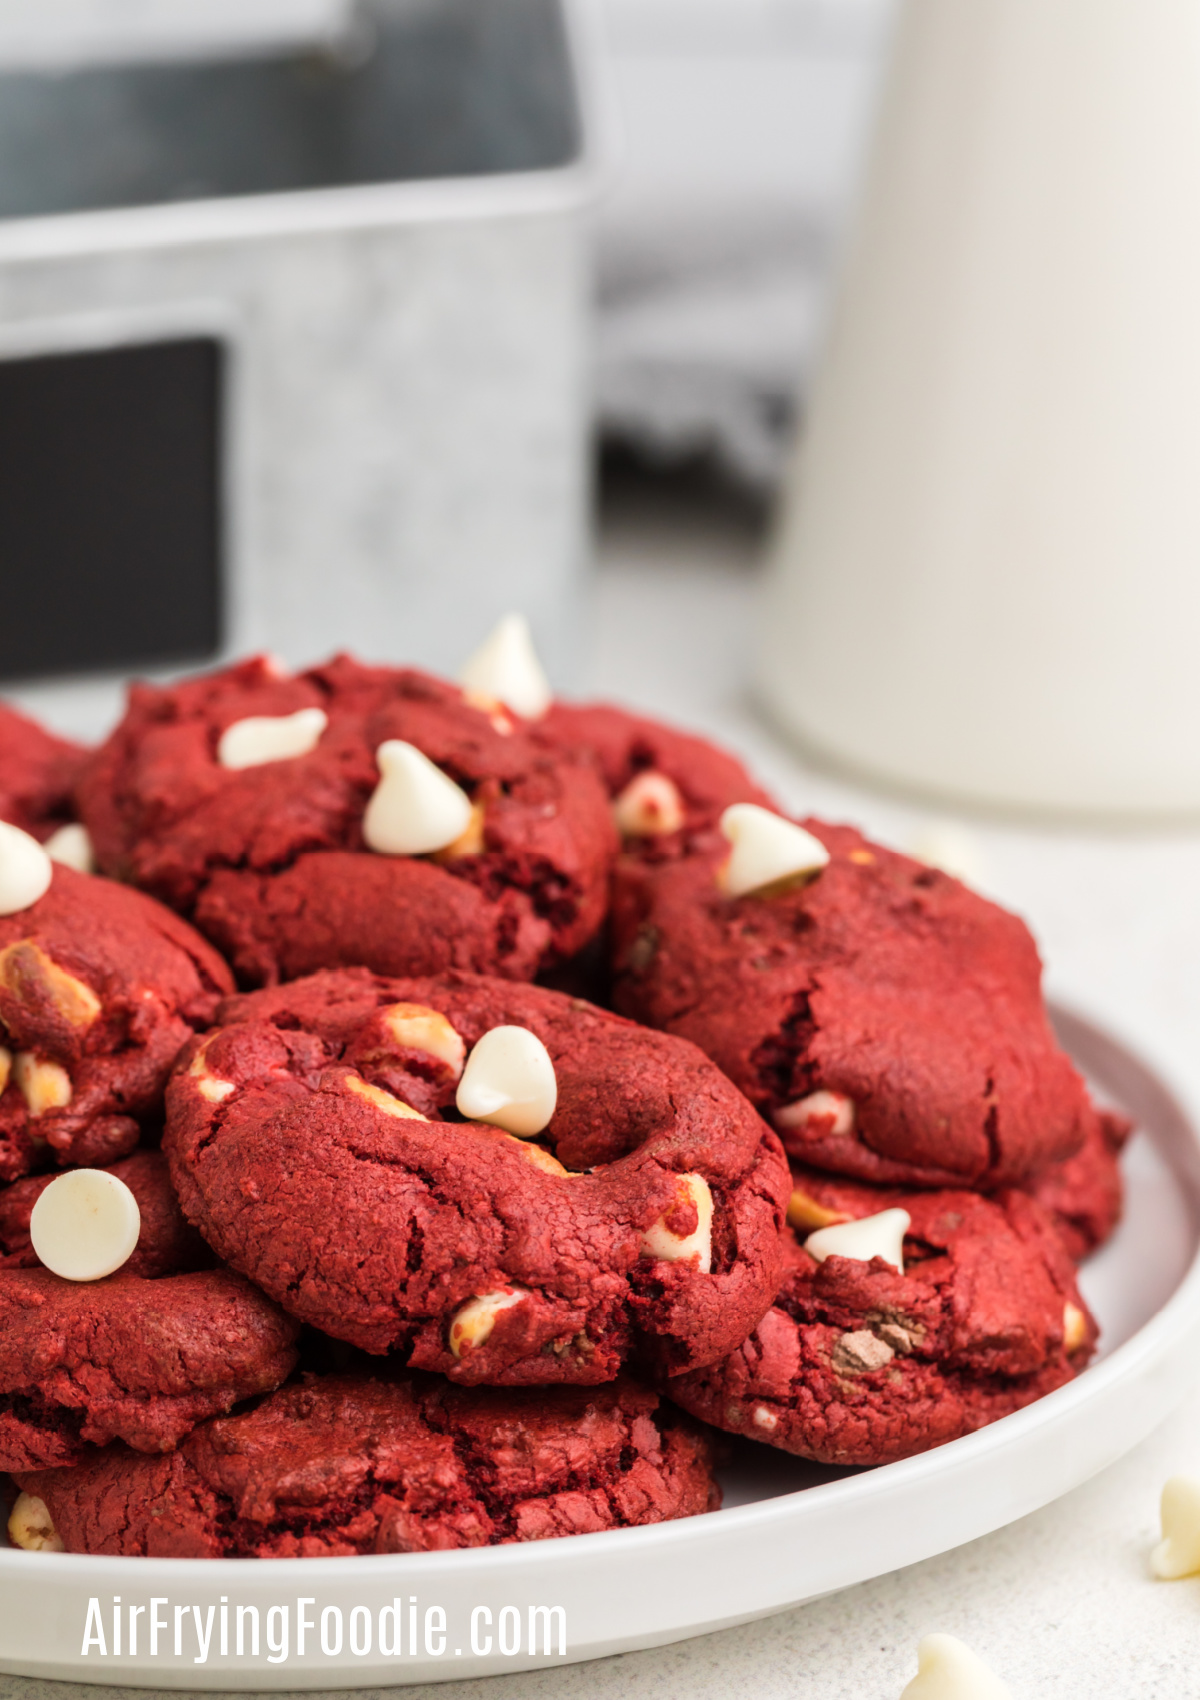 Air Fryer Red Velvet Cake Mix Cookies with white chocolate chips on a white plate ready to eat.